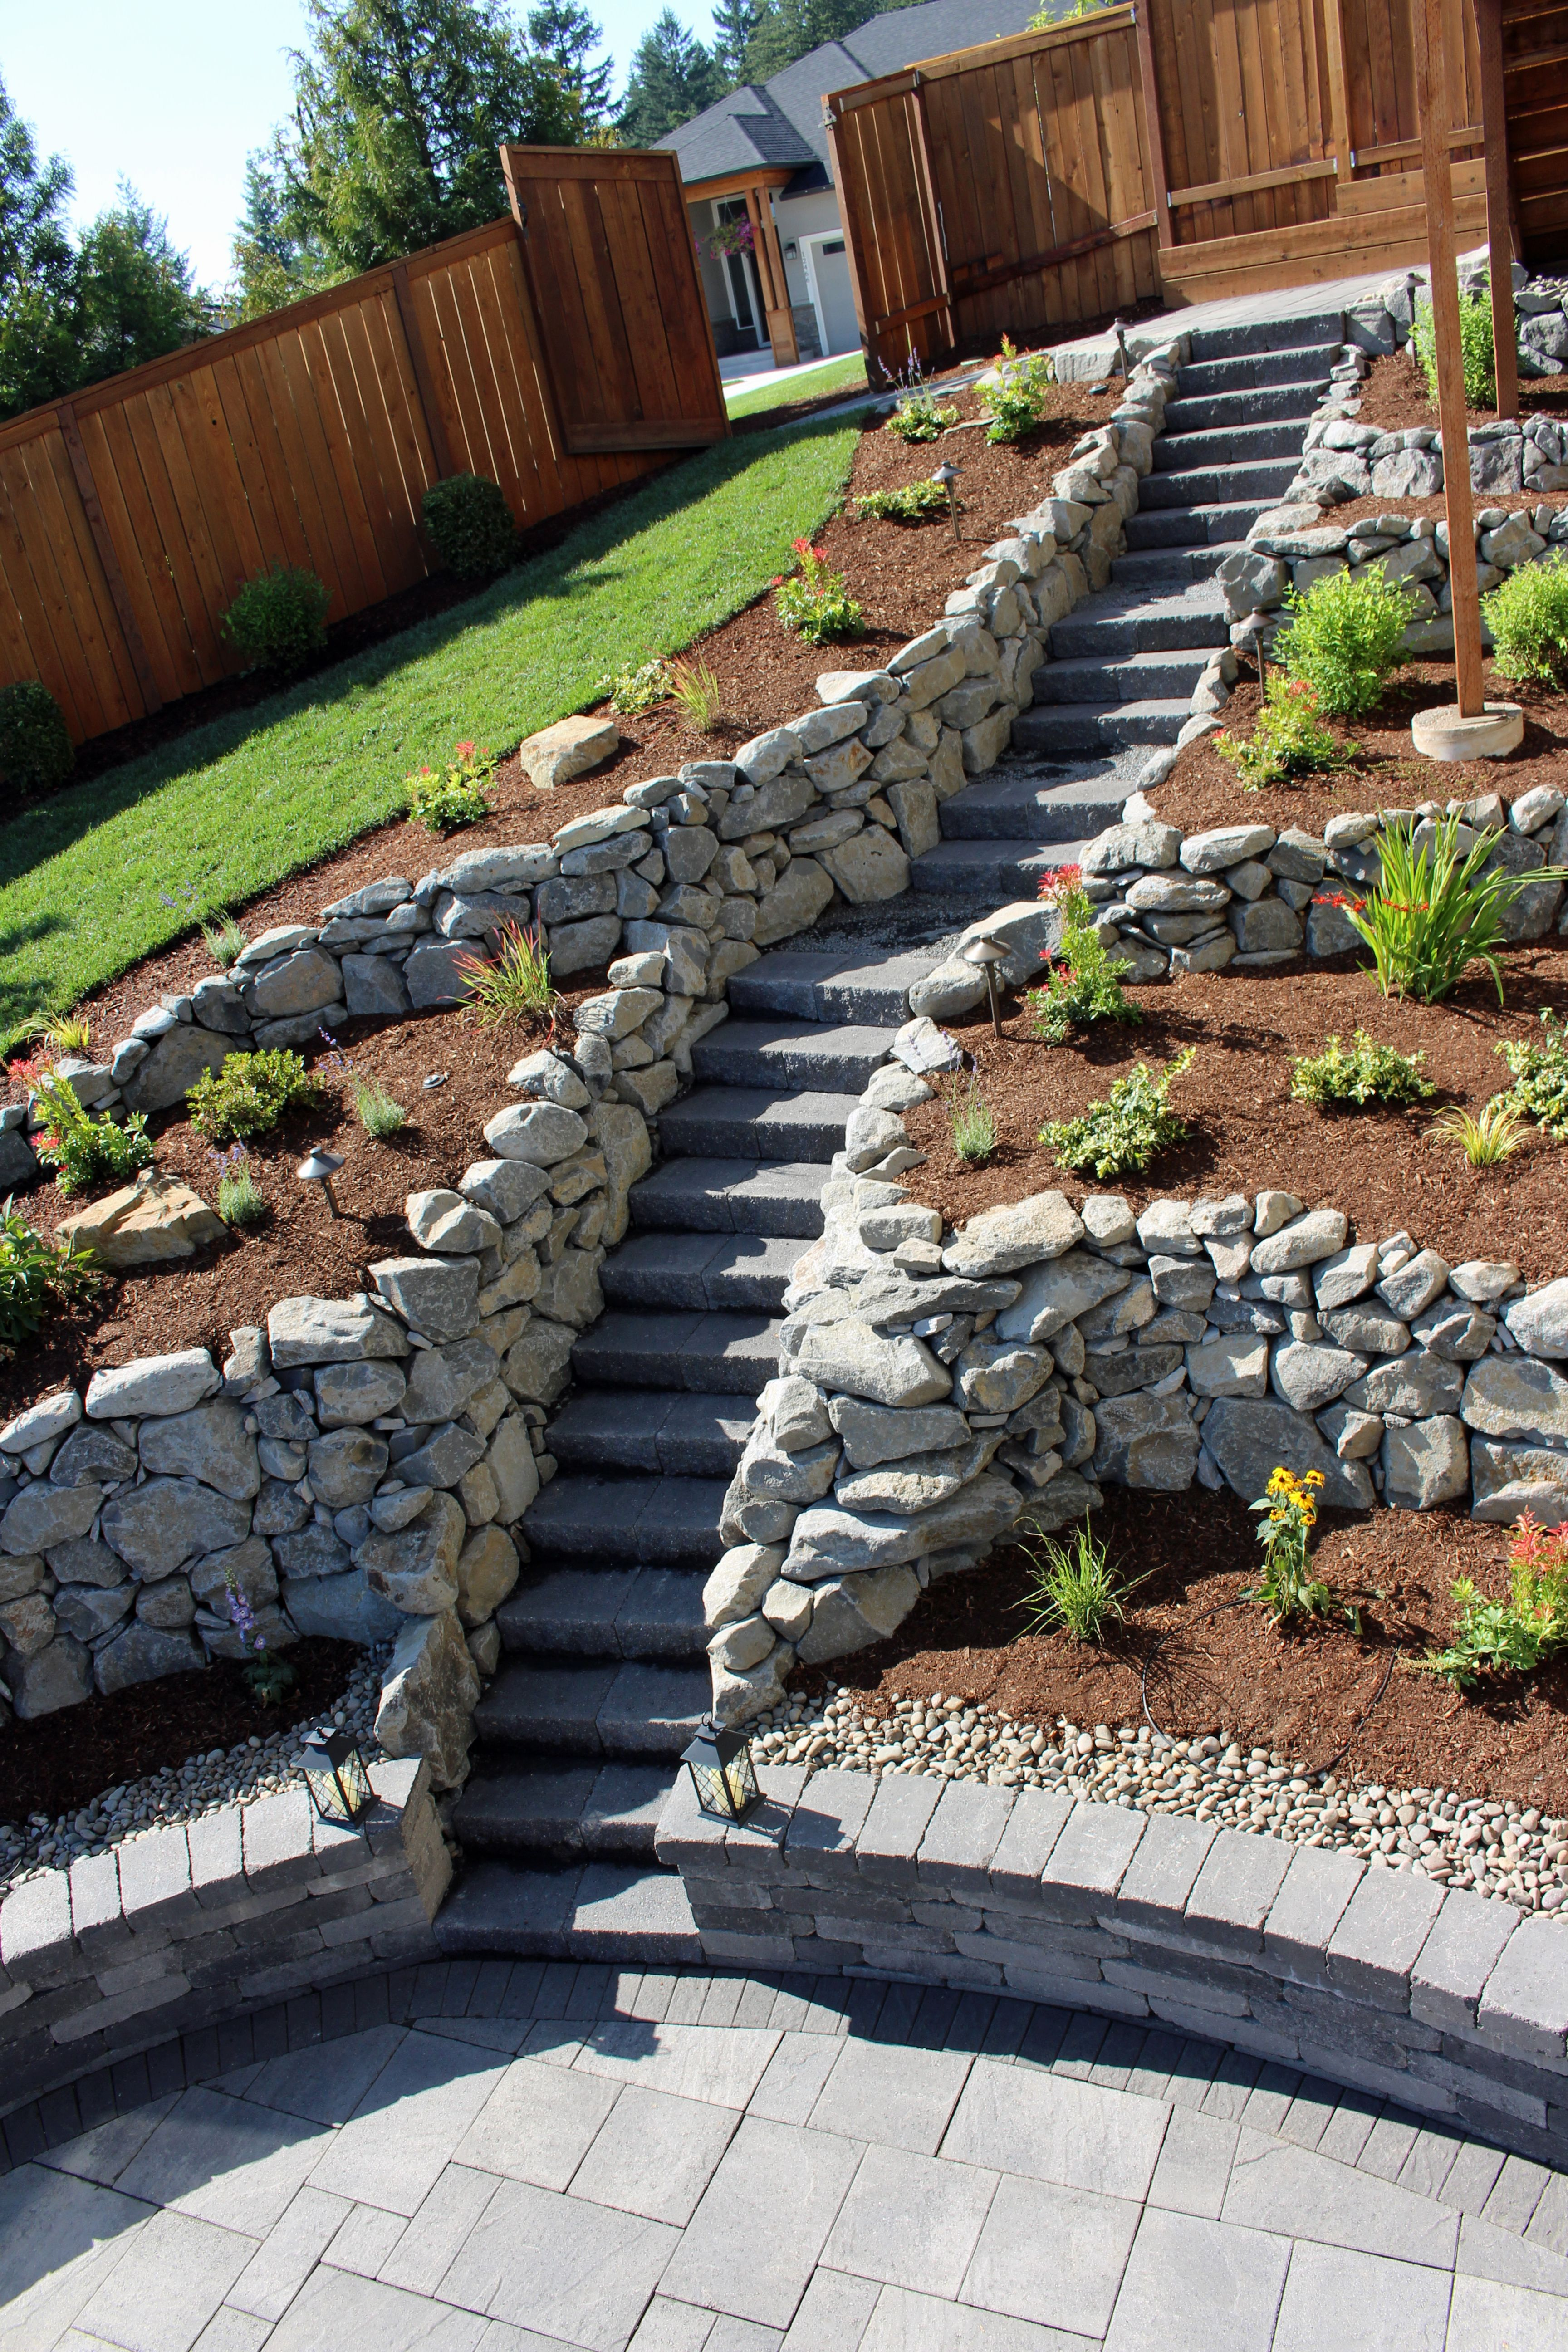 Stone Block Steps For A Steep Location Sloped Garden Small